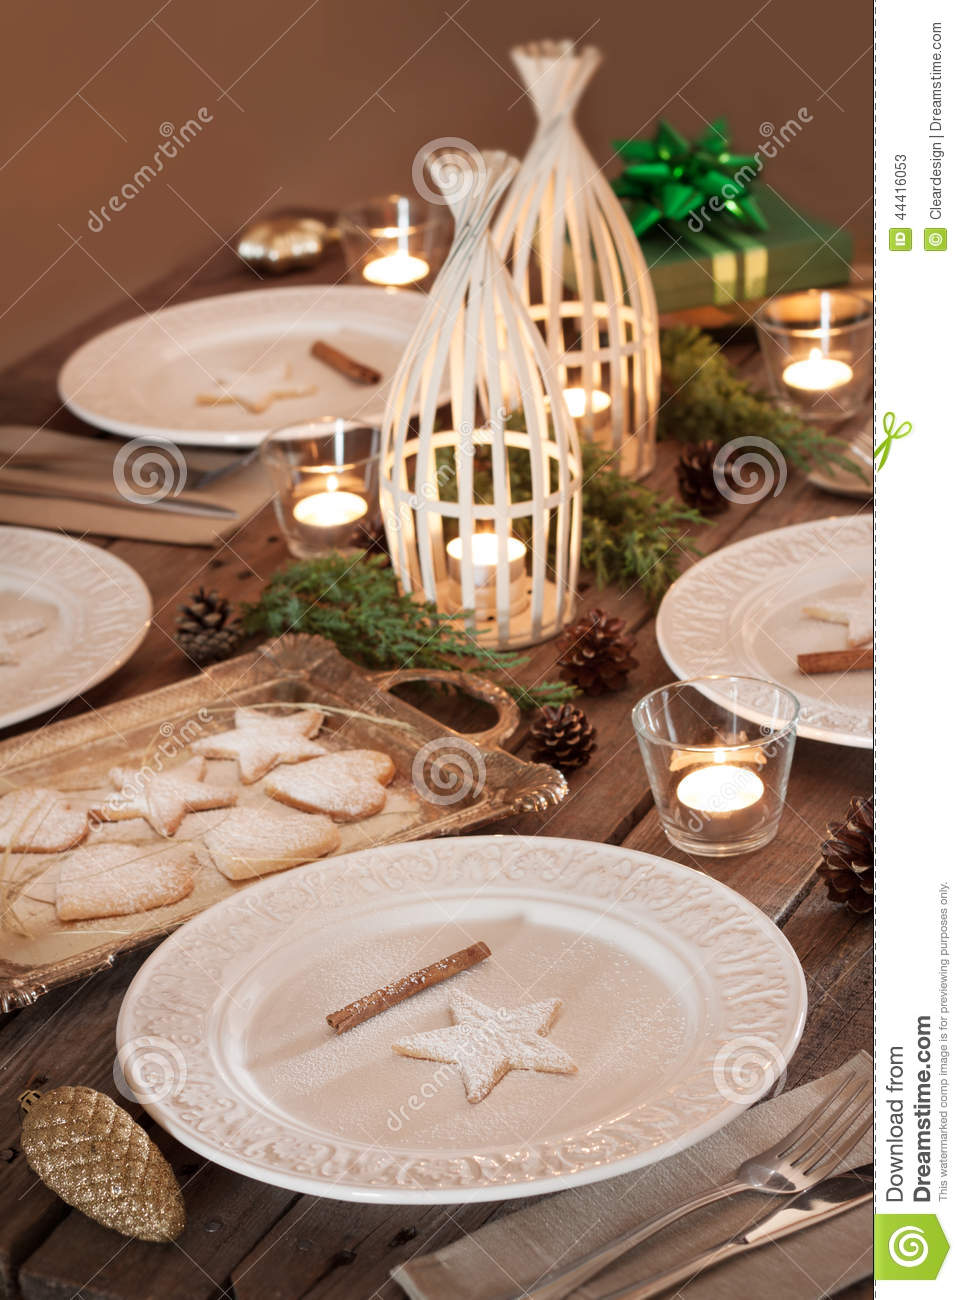 Christmas table setting rustic style natural decorations